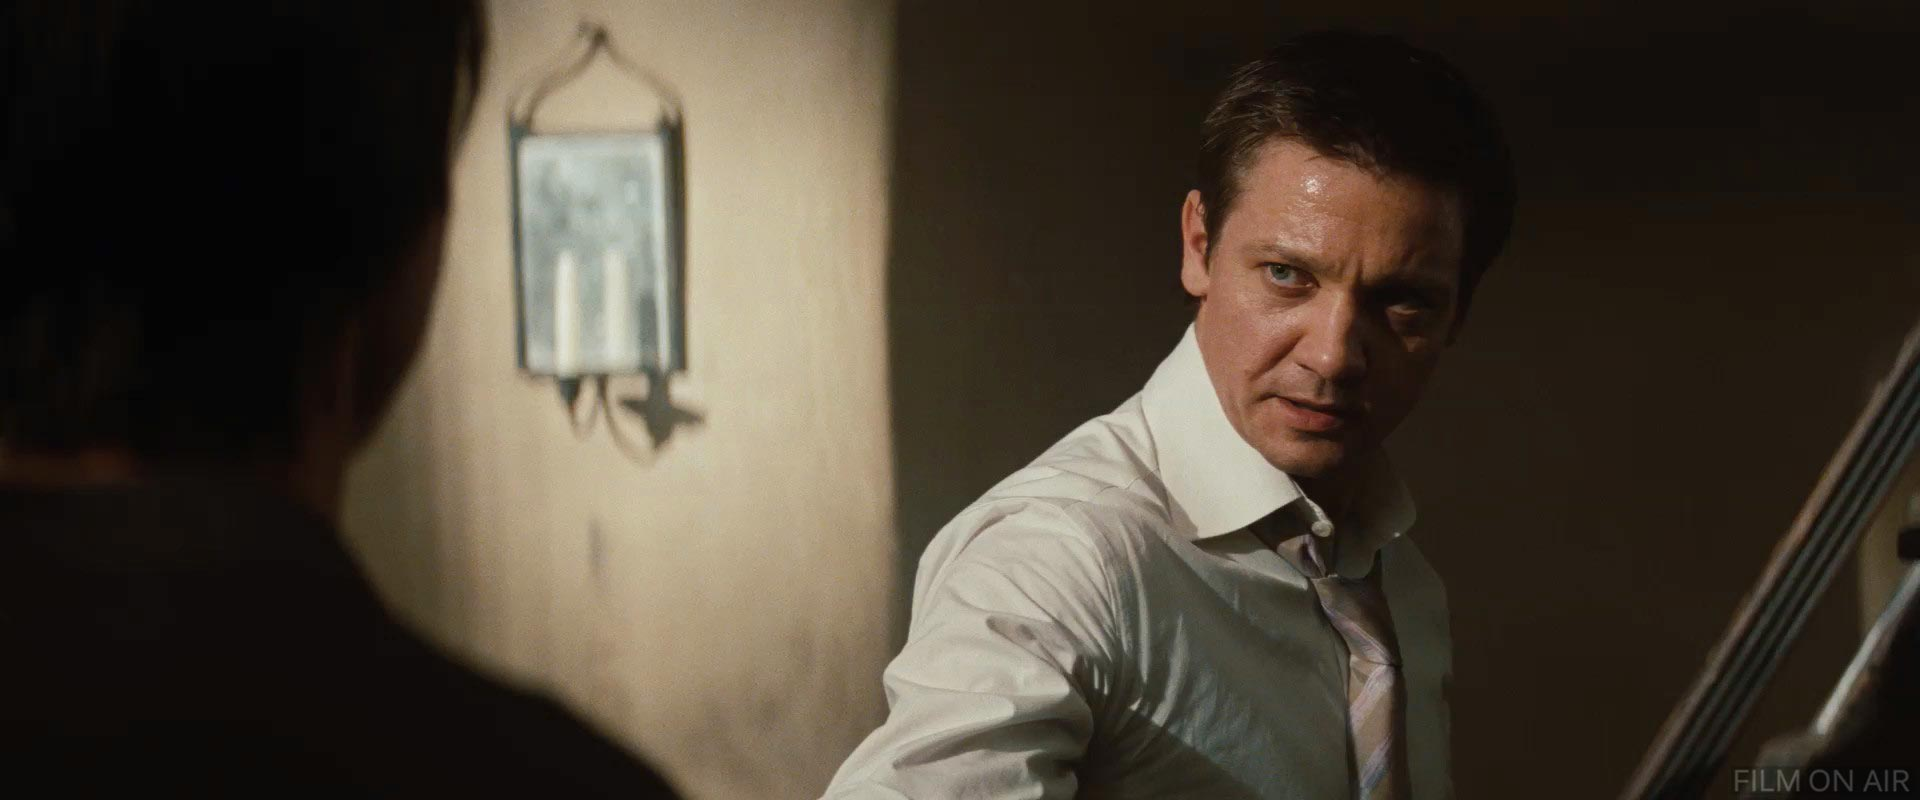 Jeremy Renner in Mission: Impossible 4 - Ghost Protocol